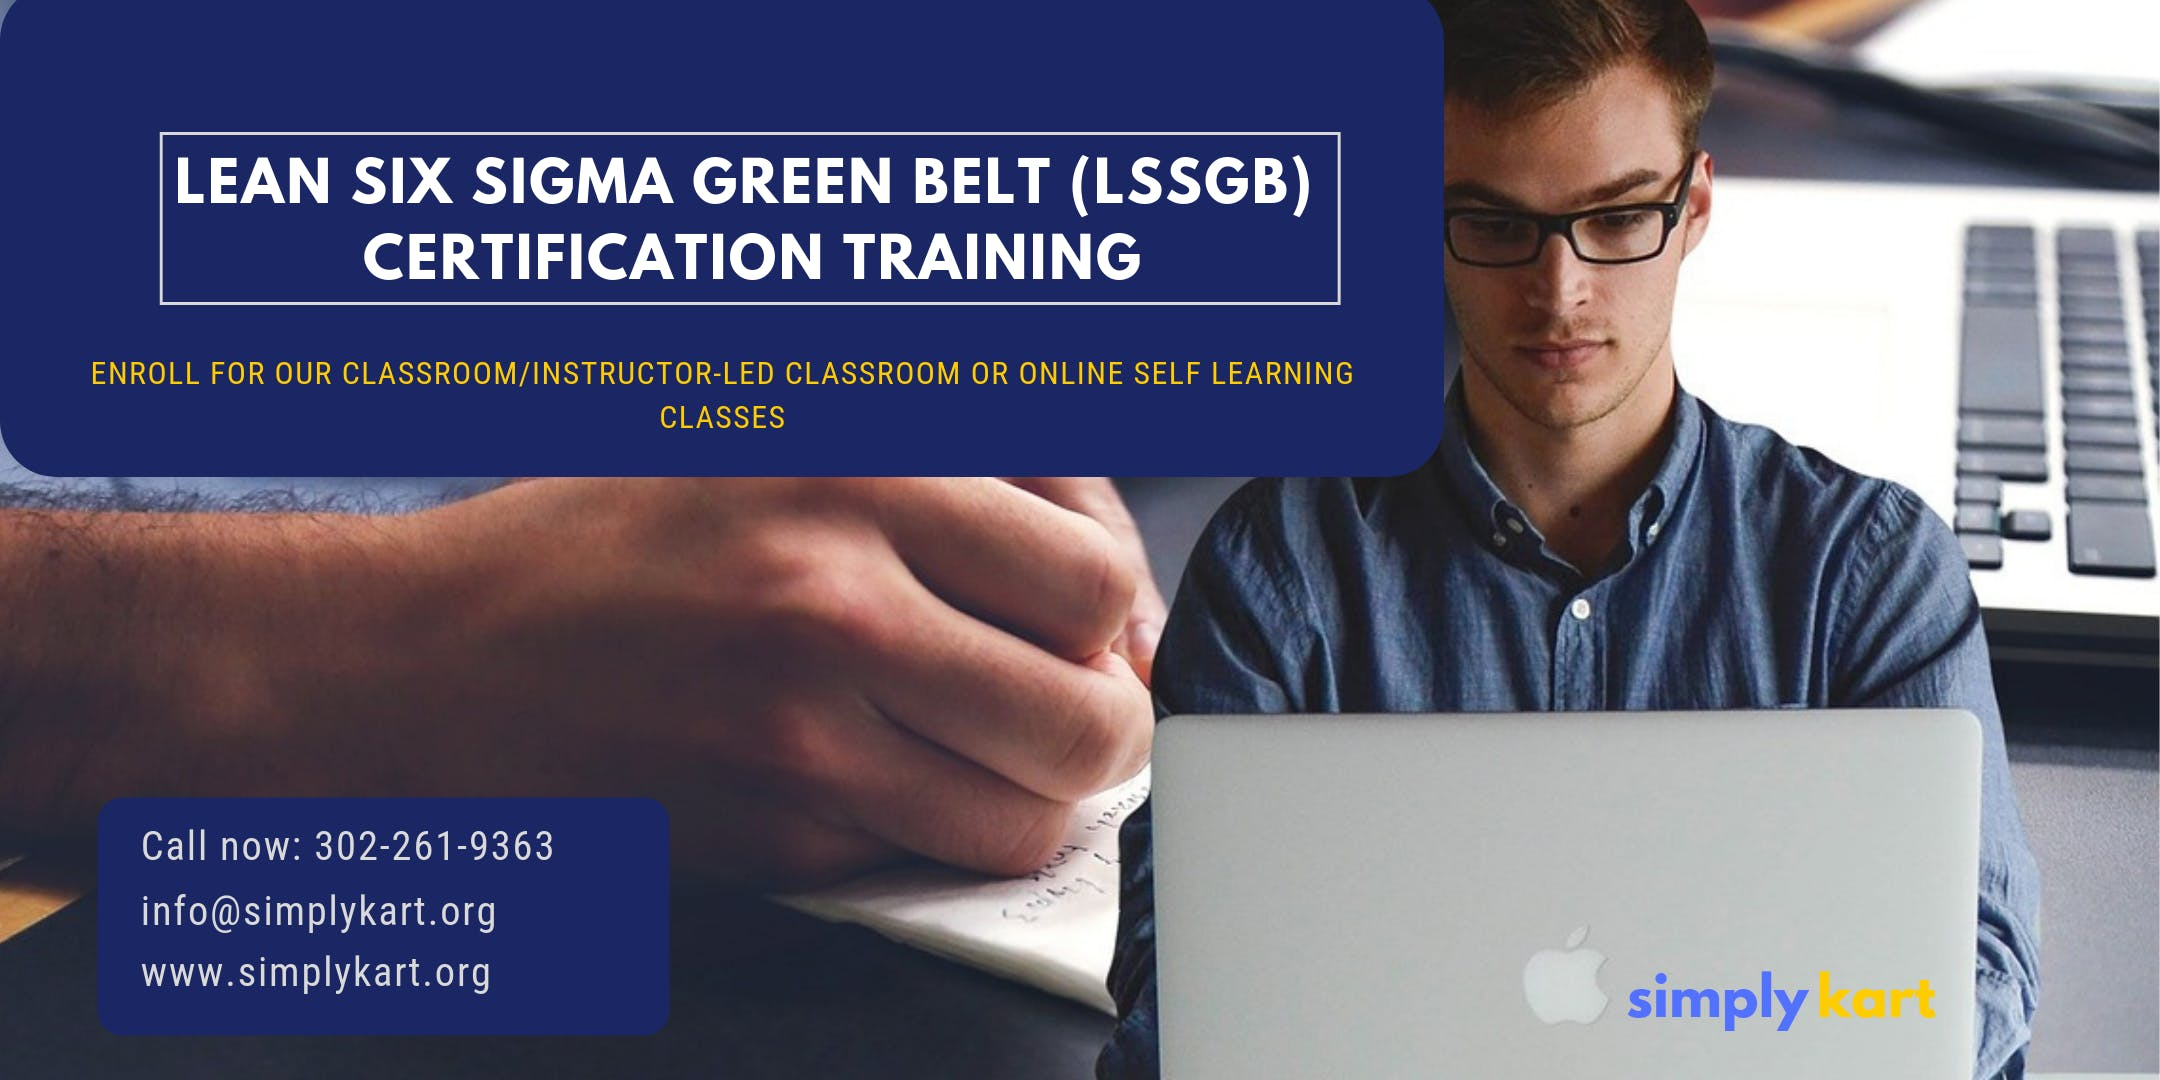 Lean Six Sigma Green Belt (LSSGB) Certification Training in White Rock, BC